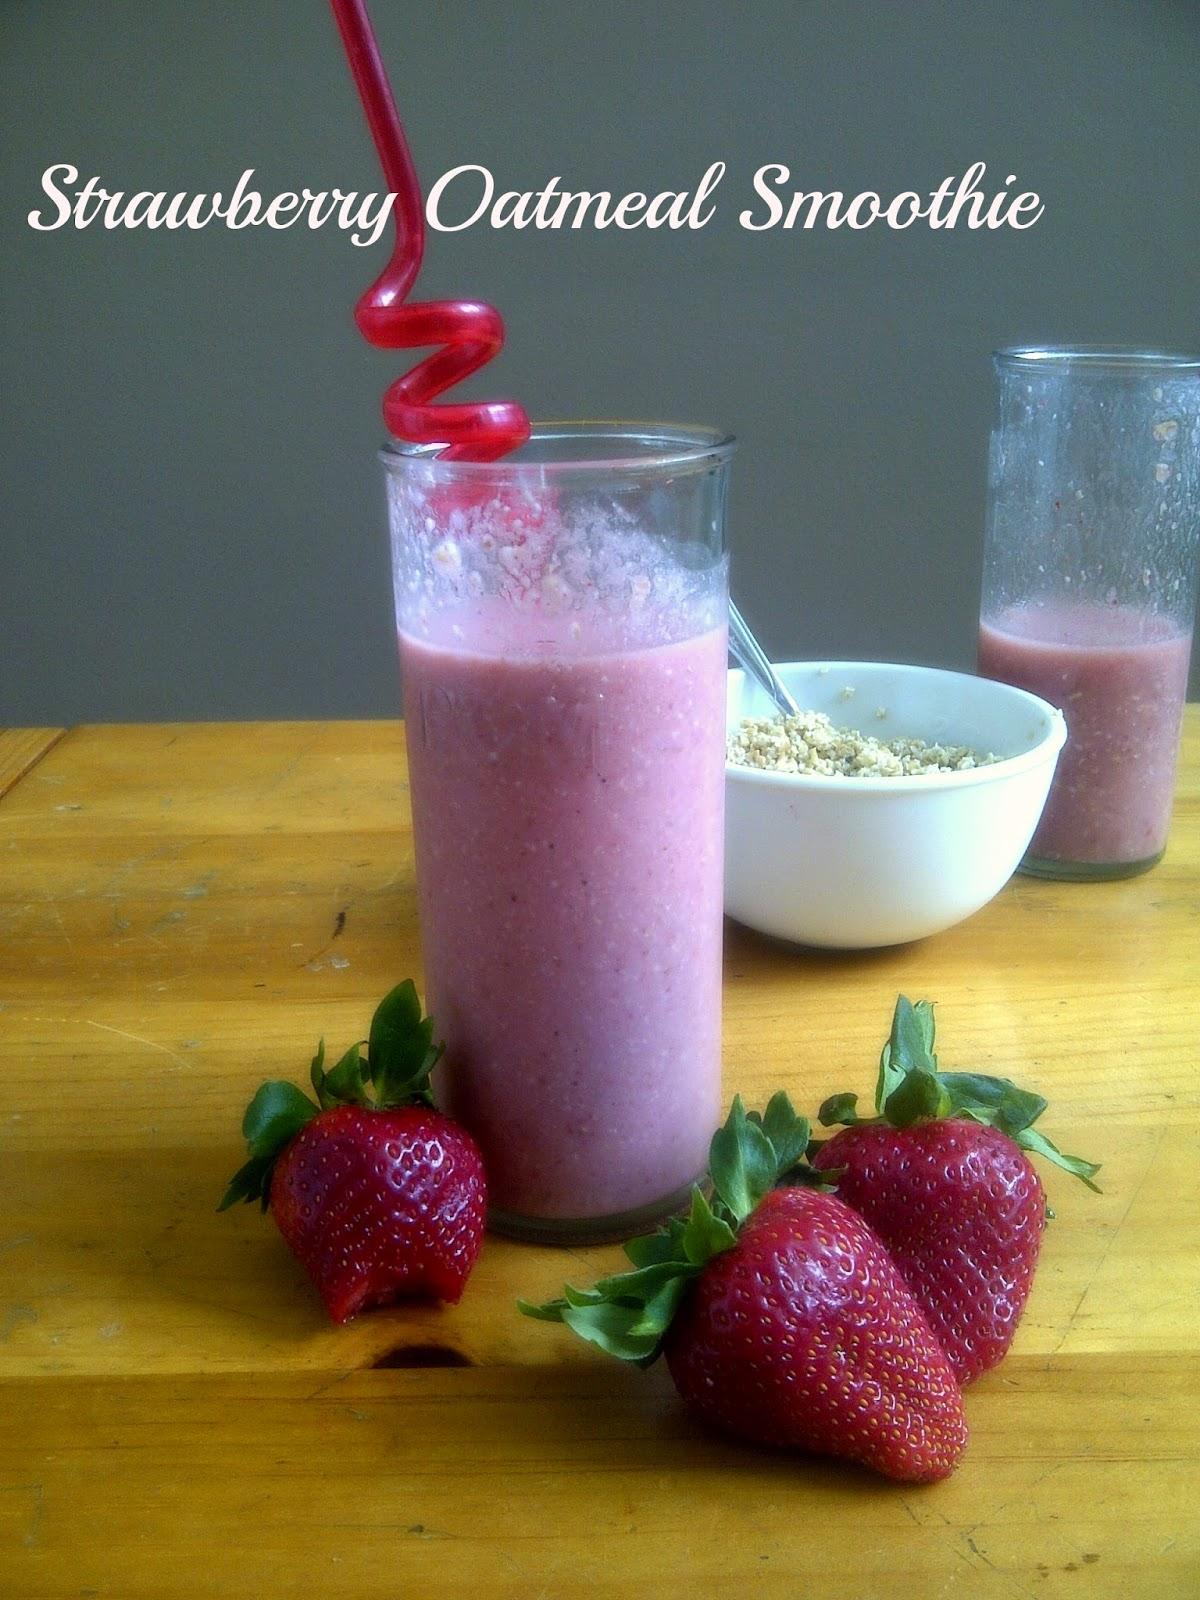 **If using gluten free oats, you can make ** ===> Strawberry Oatmeal Smoothie